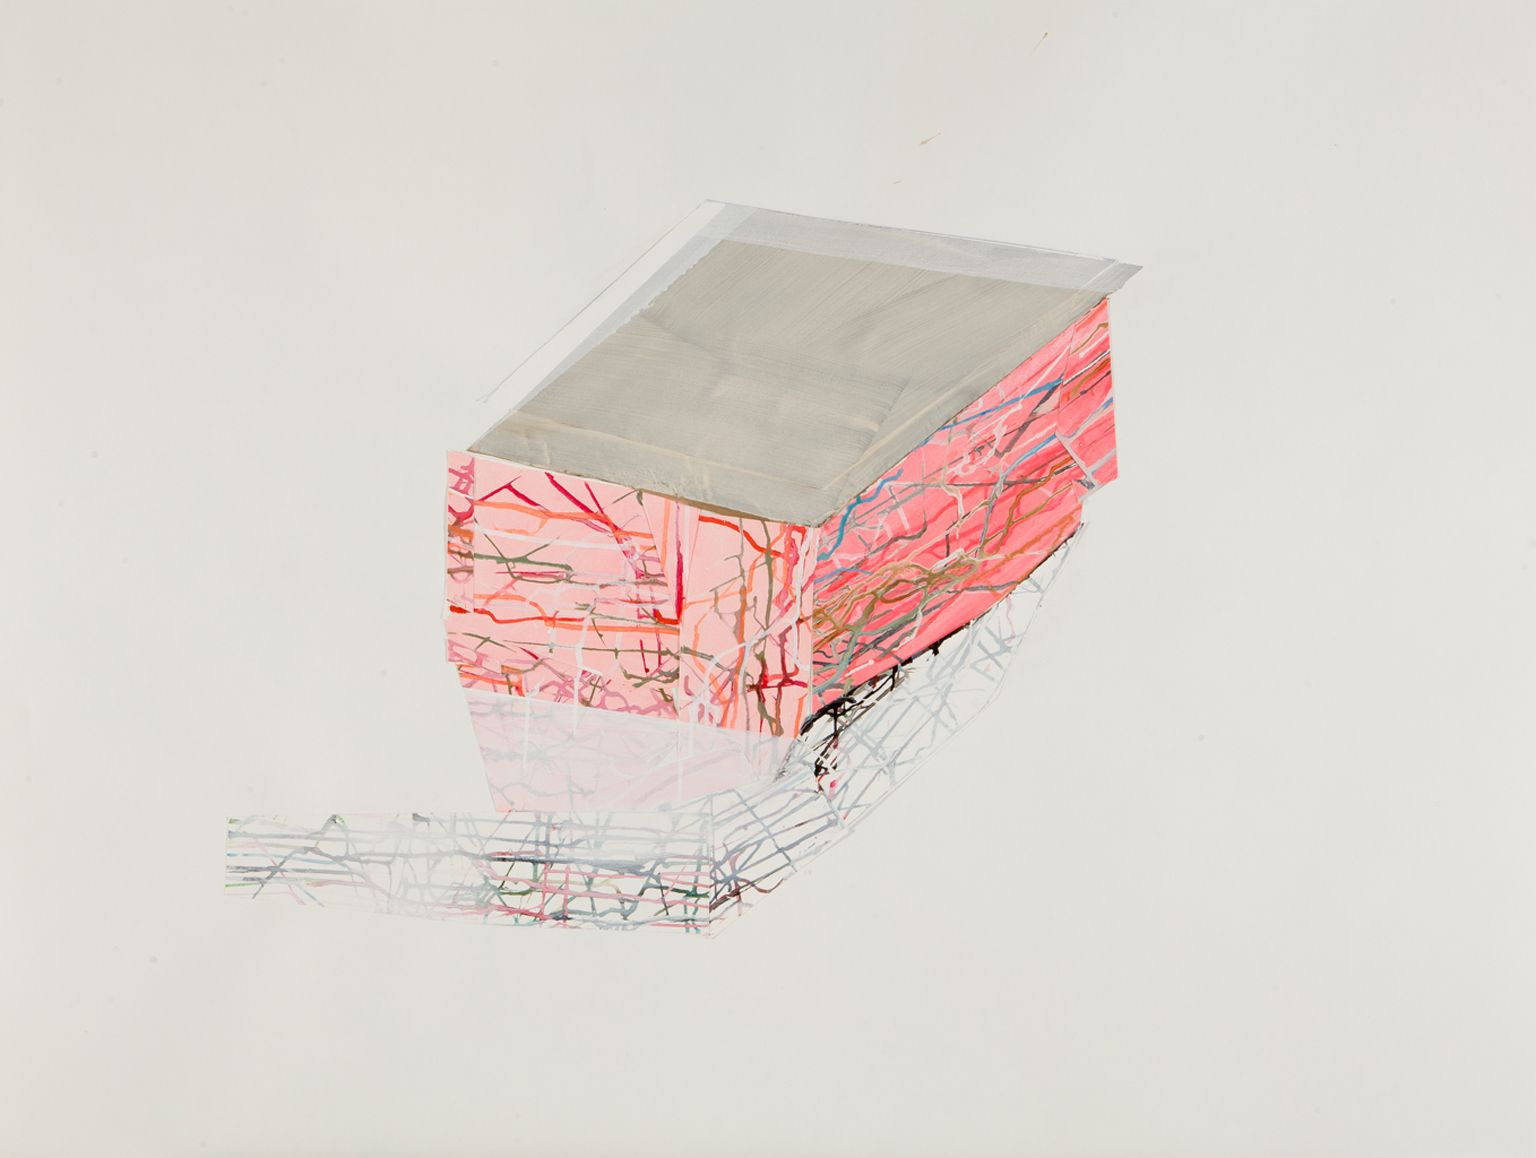 ANTONIETTA GRASSI   HOUSE FLOAT NO.1  ACRYLIC AND COLLAGEON PAPER   30X 40INCHES   2014